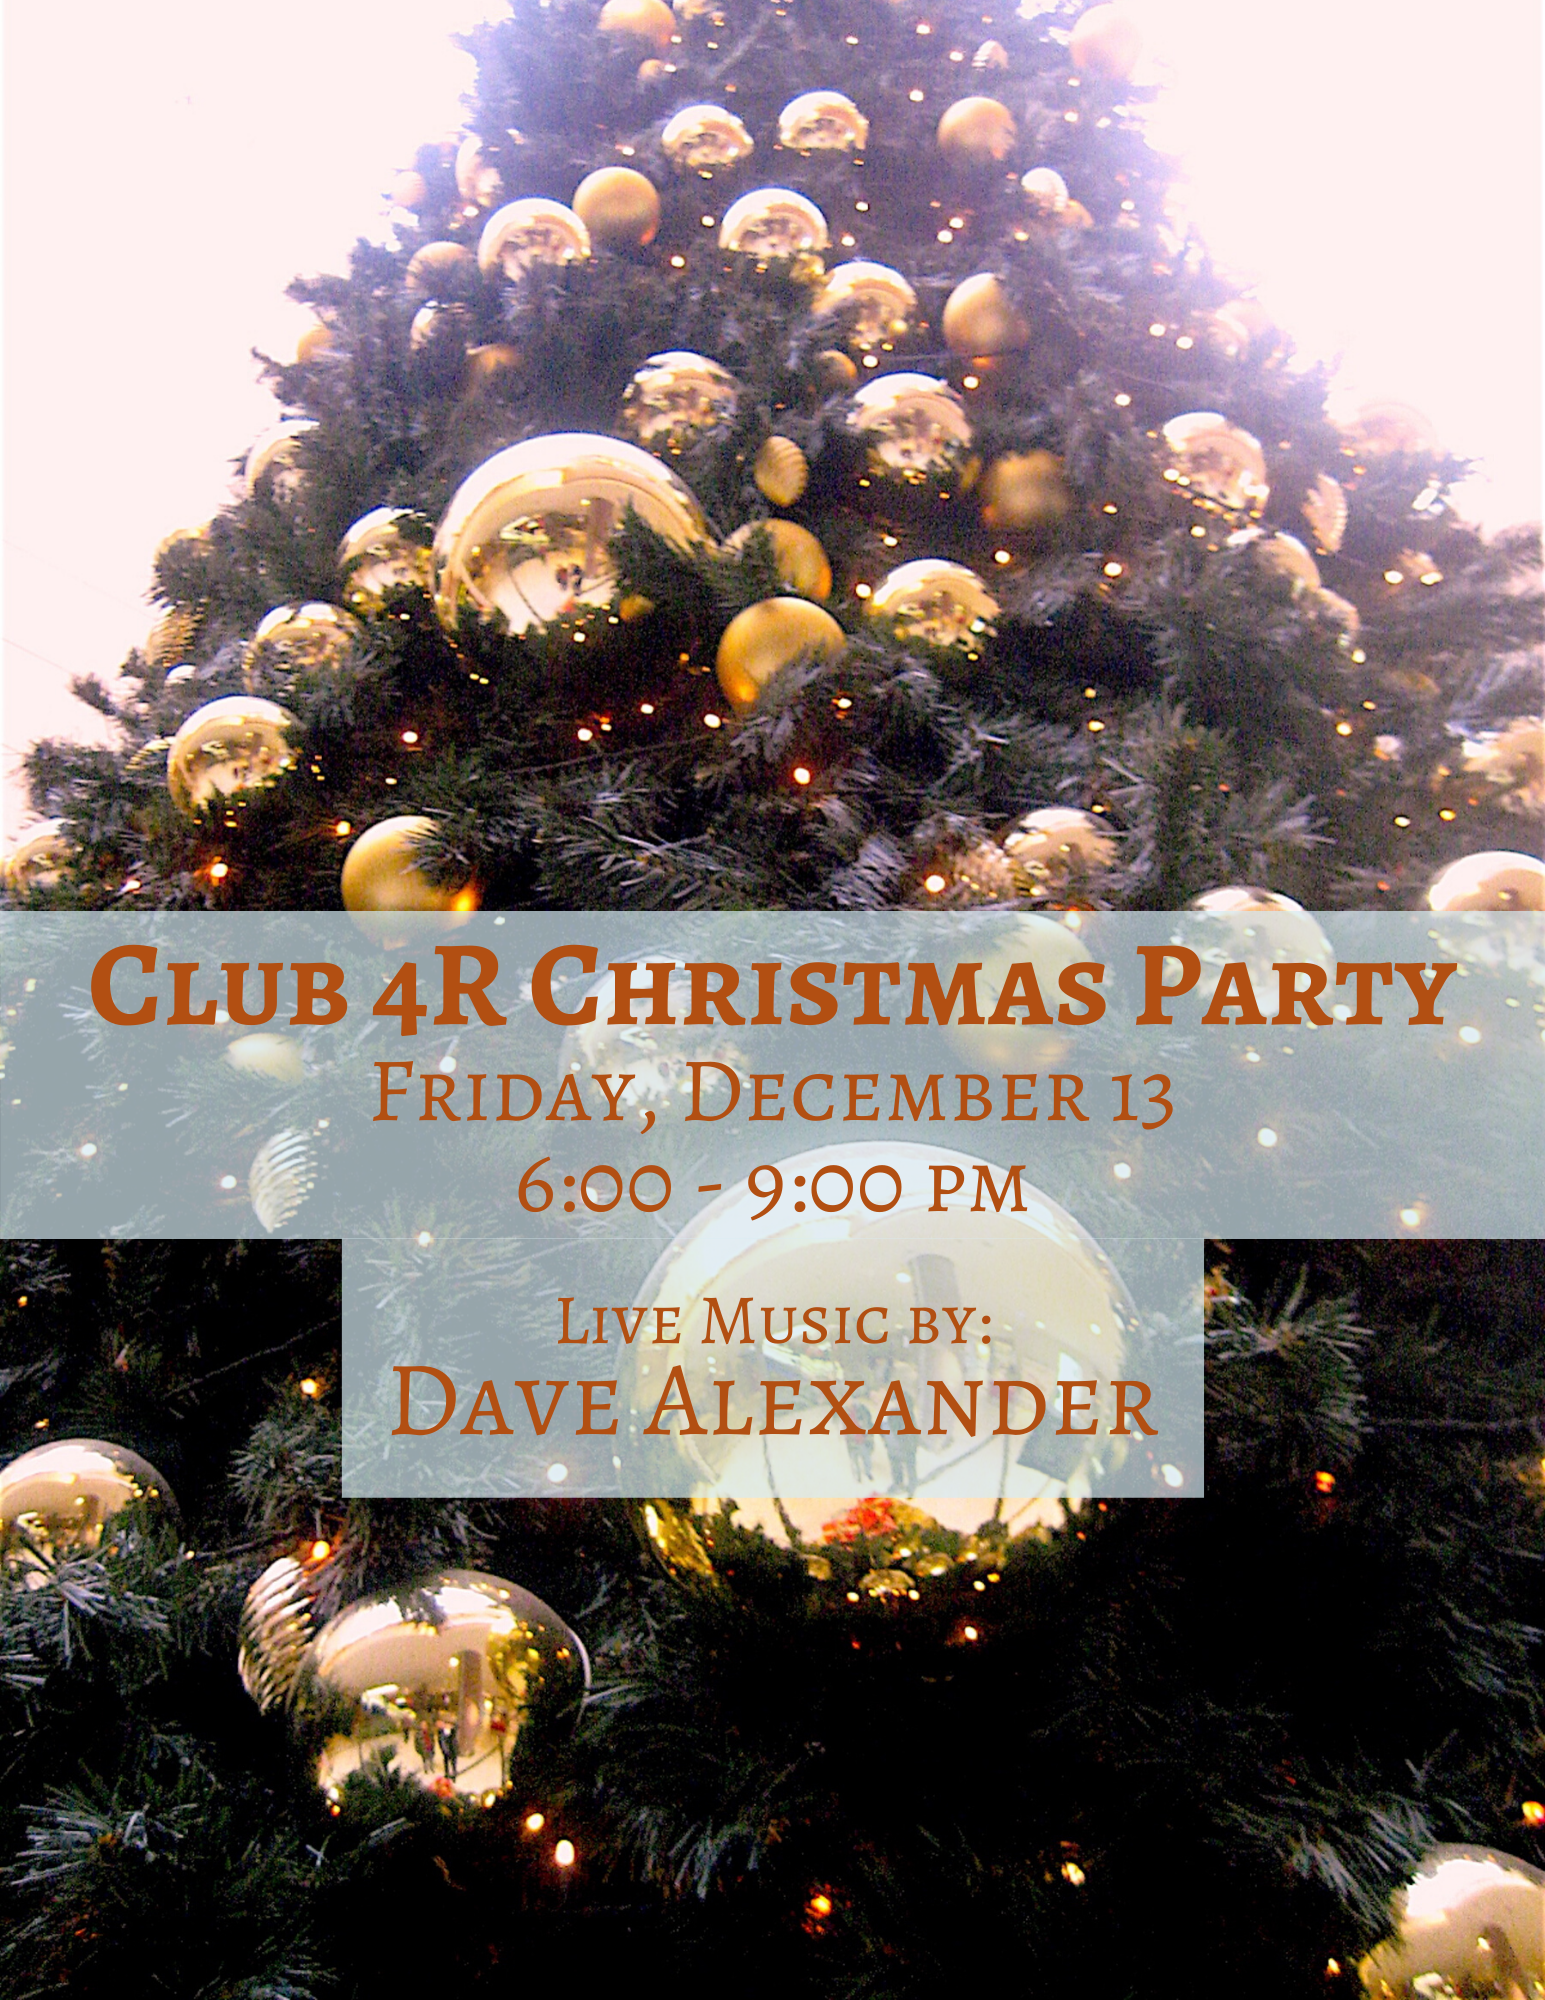 Club 4R Christmas Party - Friday, December 13